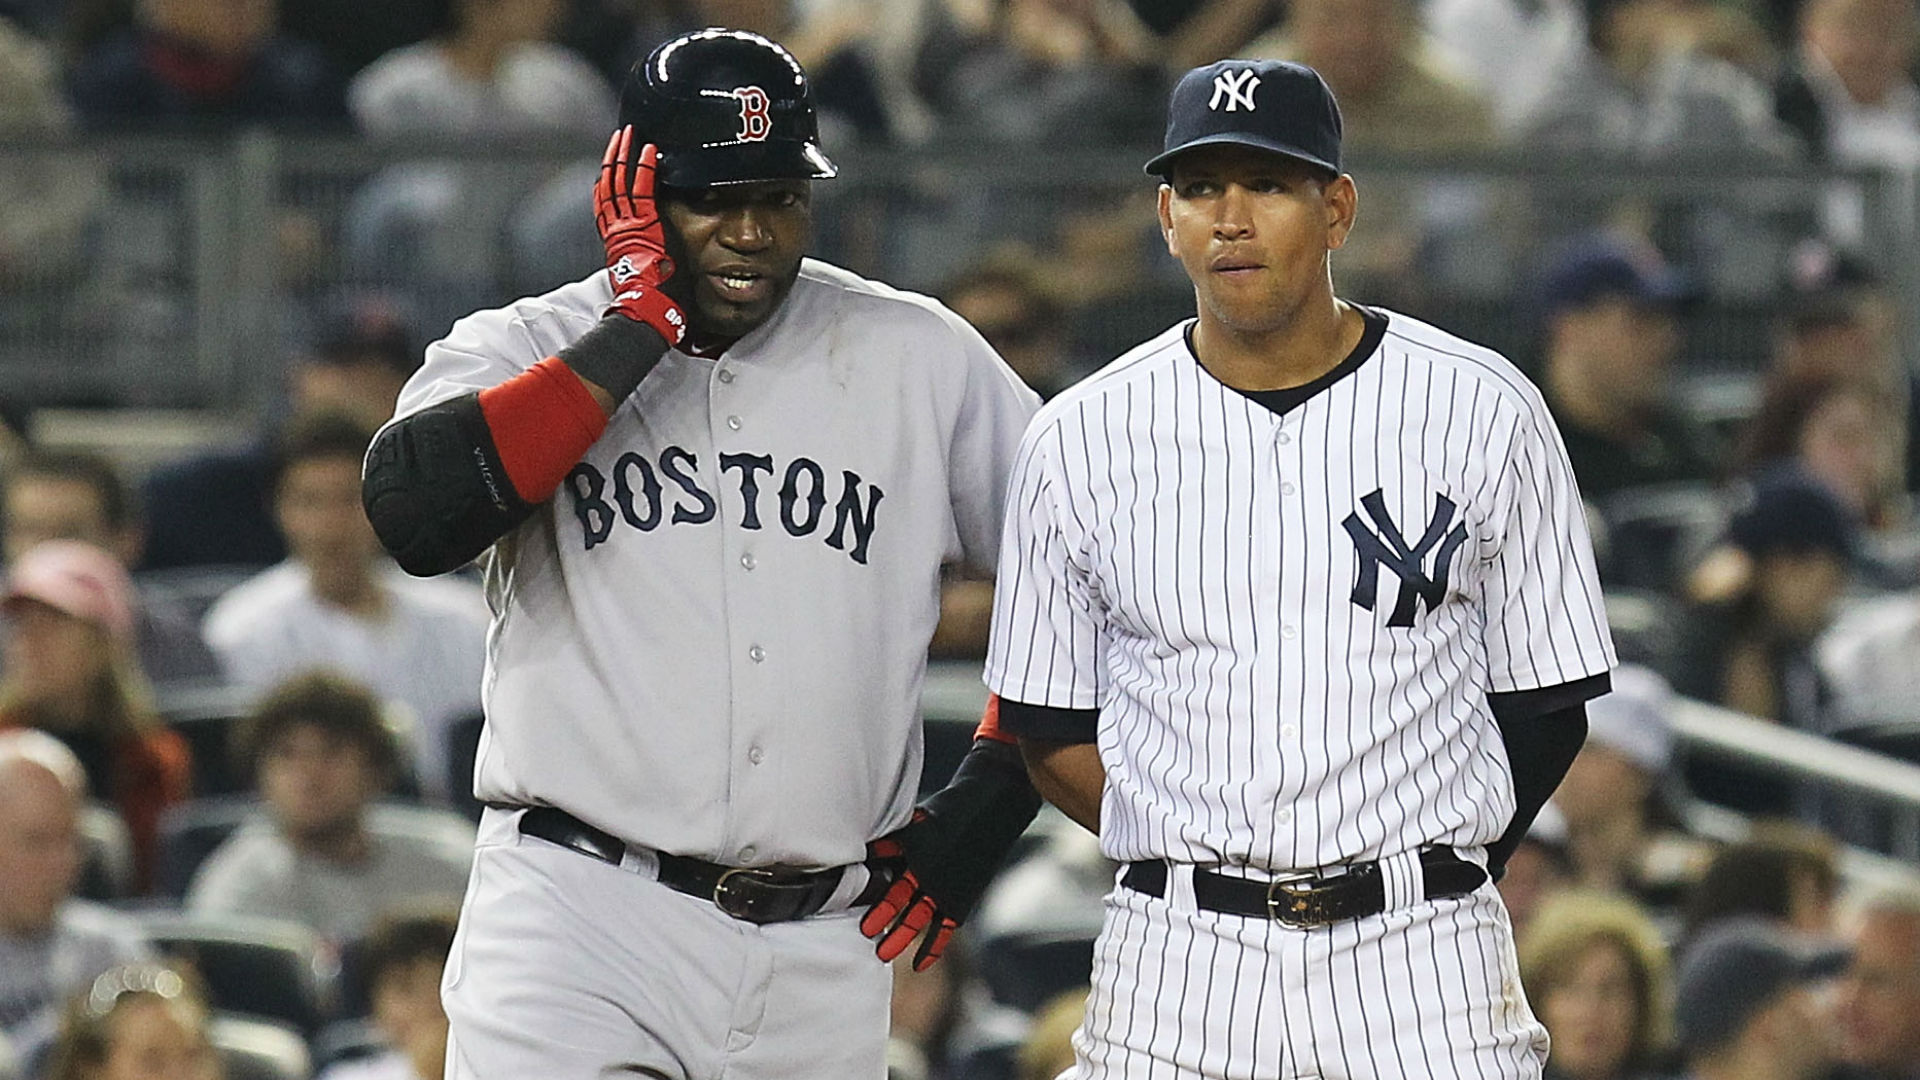 alex rodriguez the clean one When alex rodriguez talks, whether in his long playing career or in his current role as one of the most coveted analysts, it is always interesting – and often while phillips later said that he could have offered a clean package without the perks, rodriguez said sunday that he wished he had taken a more.